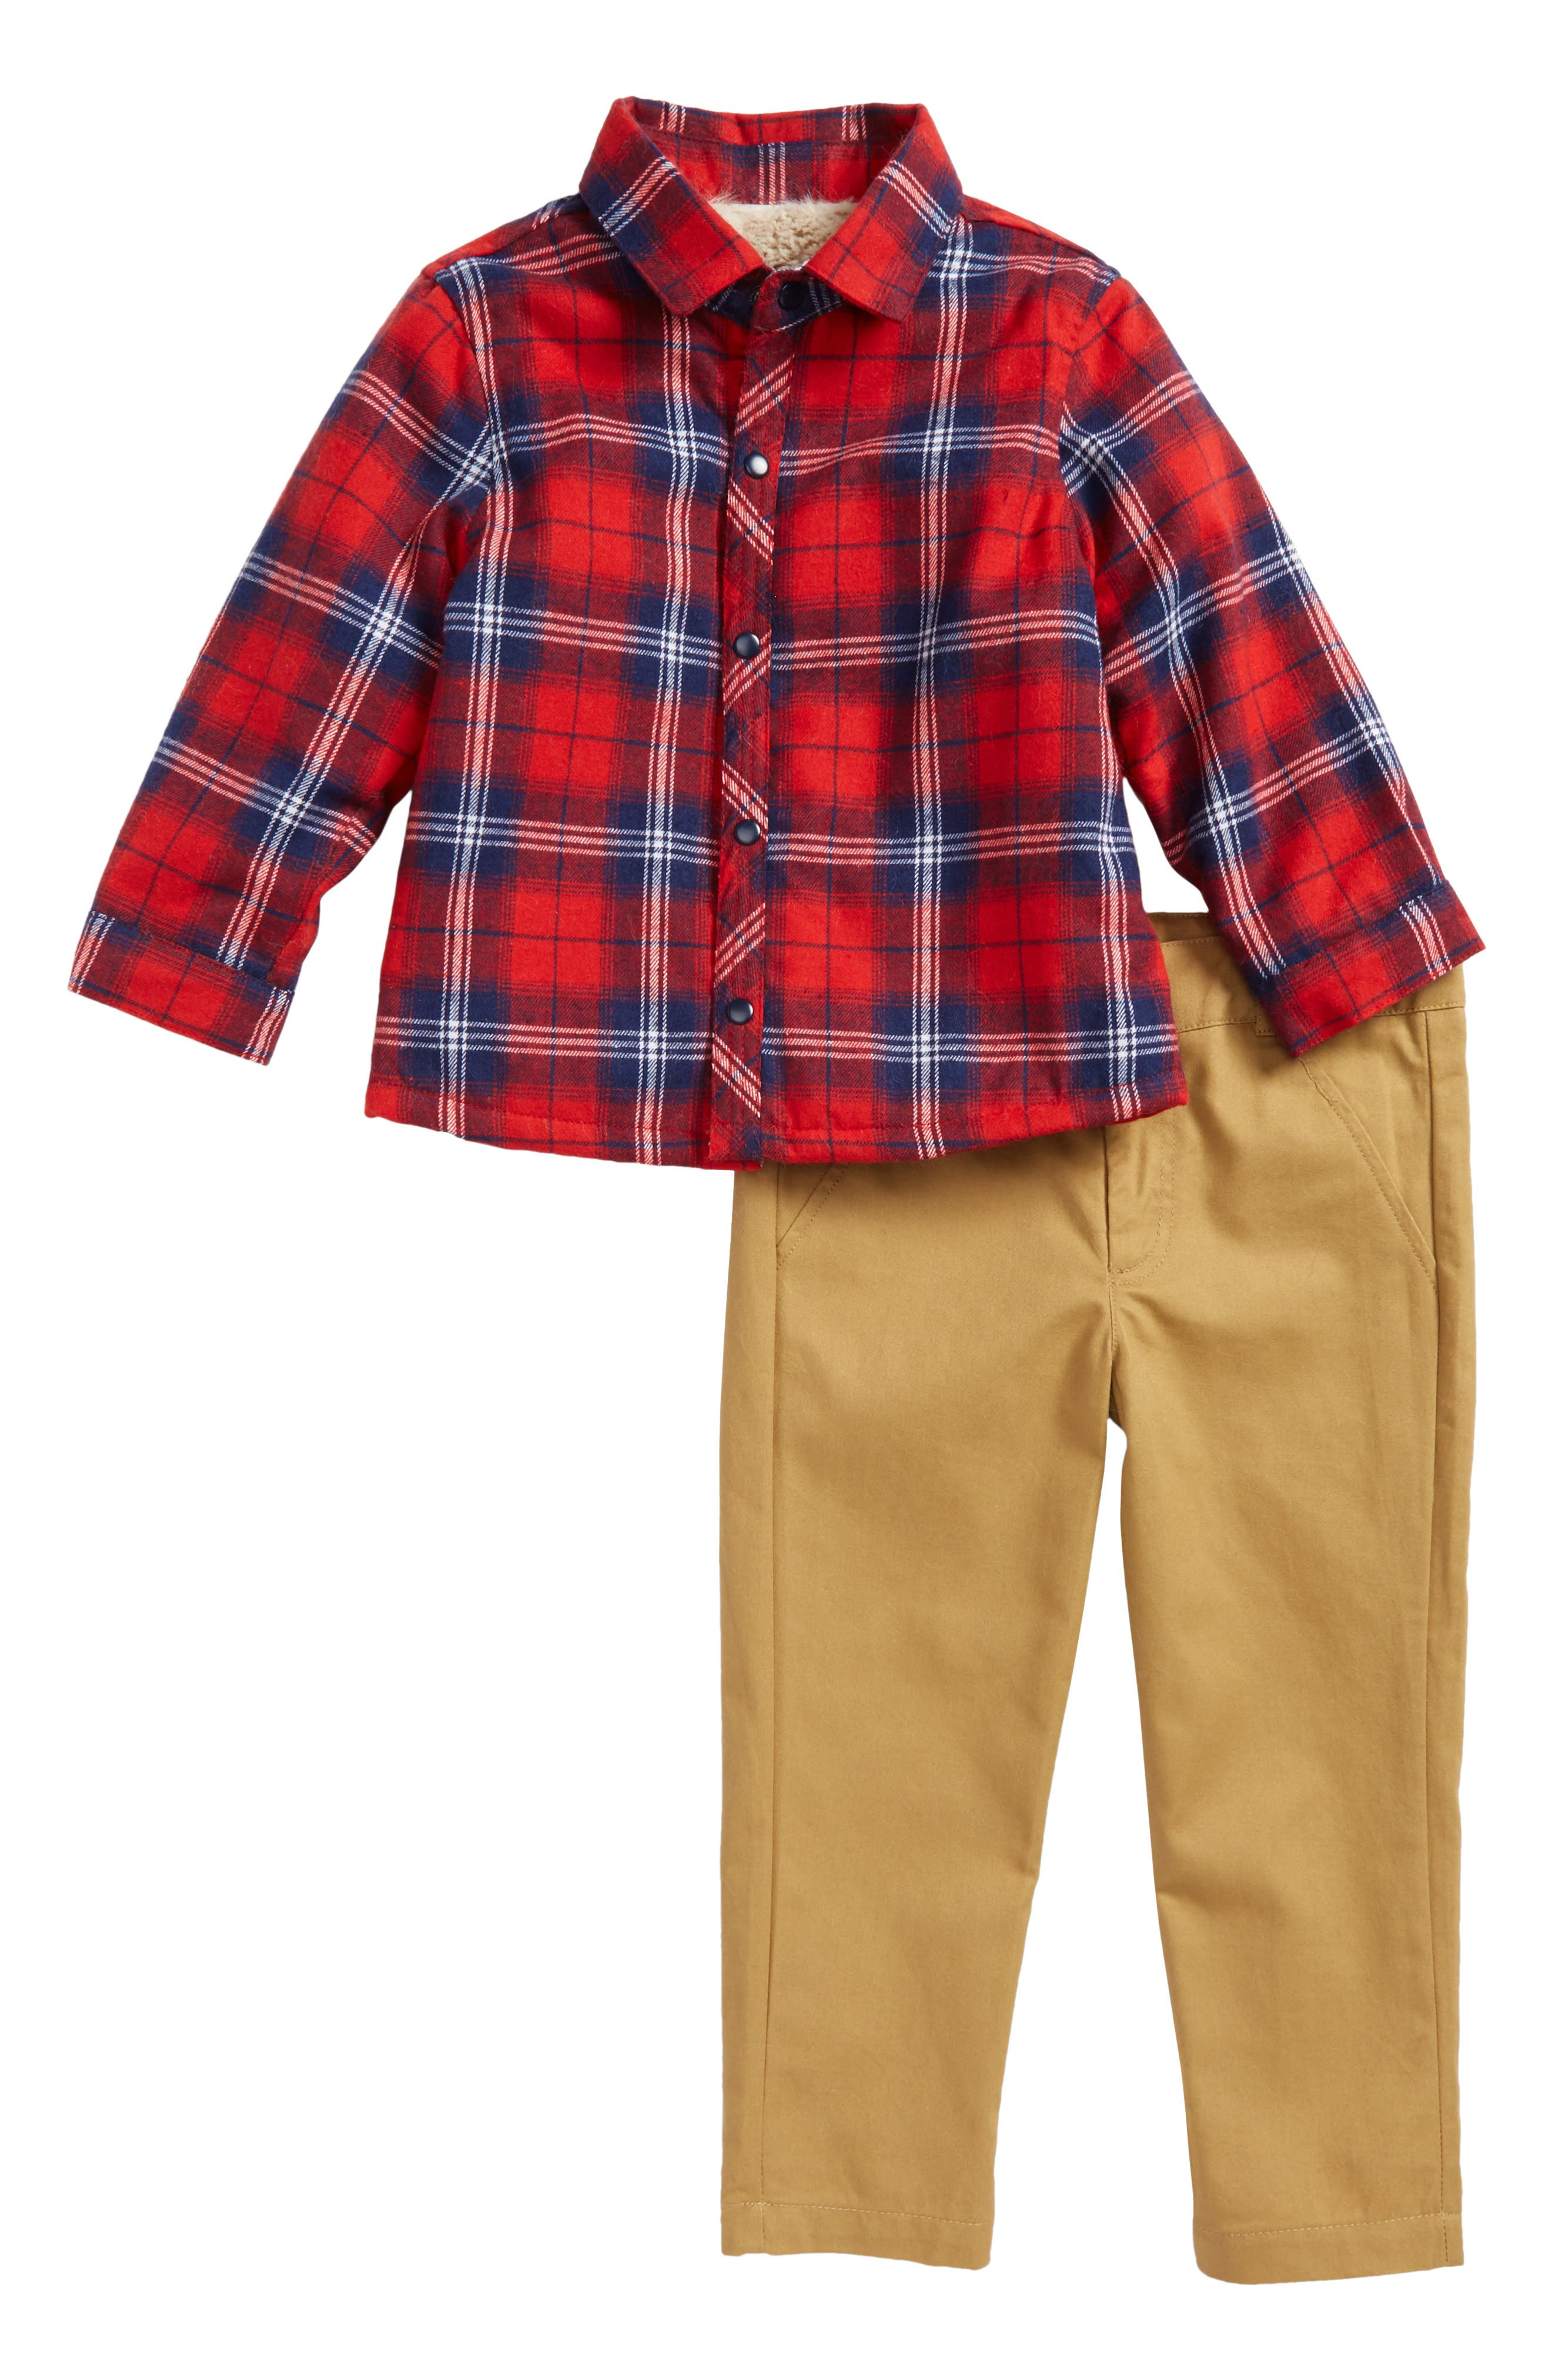 Alternate Image 1 Selected - Little Brother by Pippa & Julie Plaid Faux Fur Lined Shirt & Pants Set (Baby Boys)